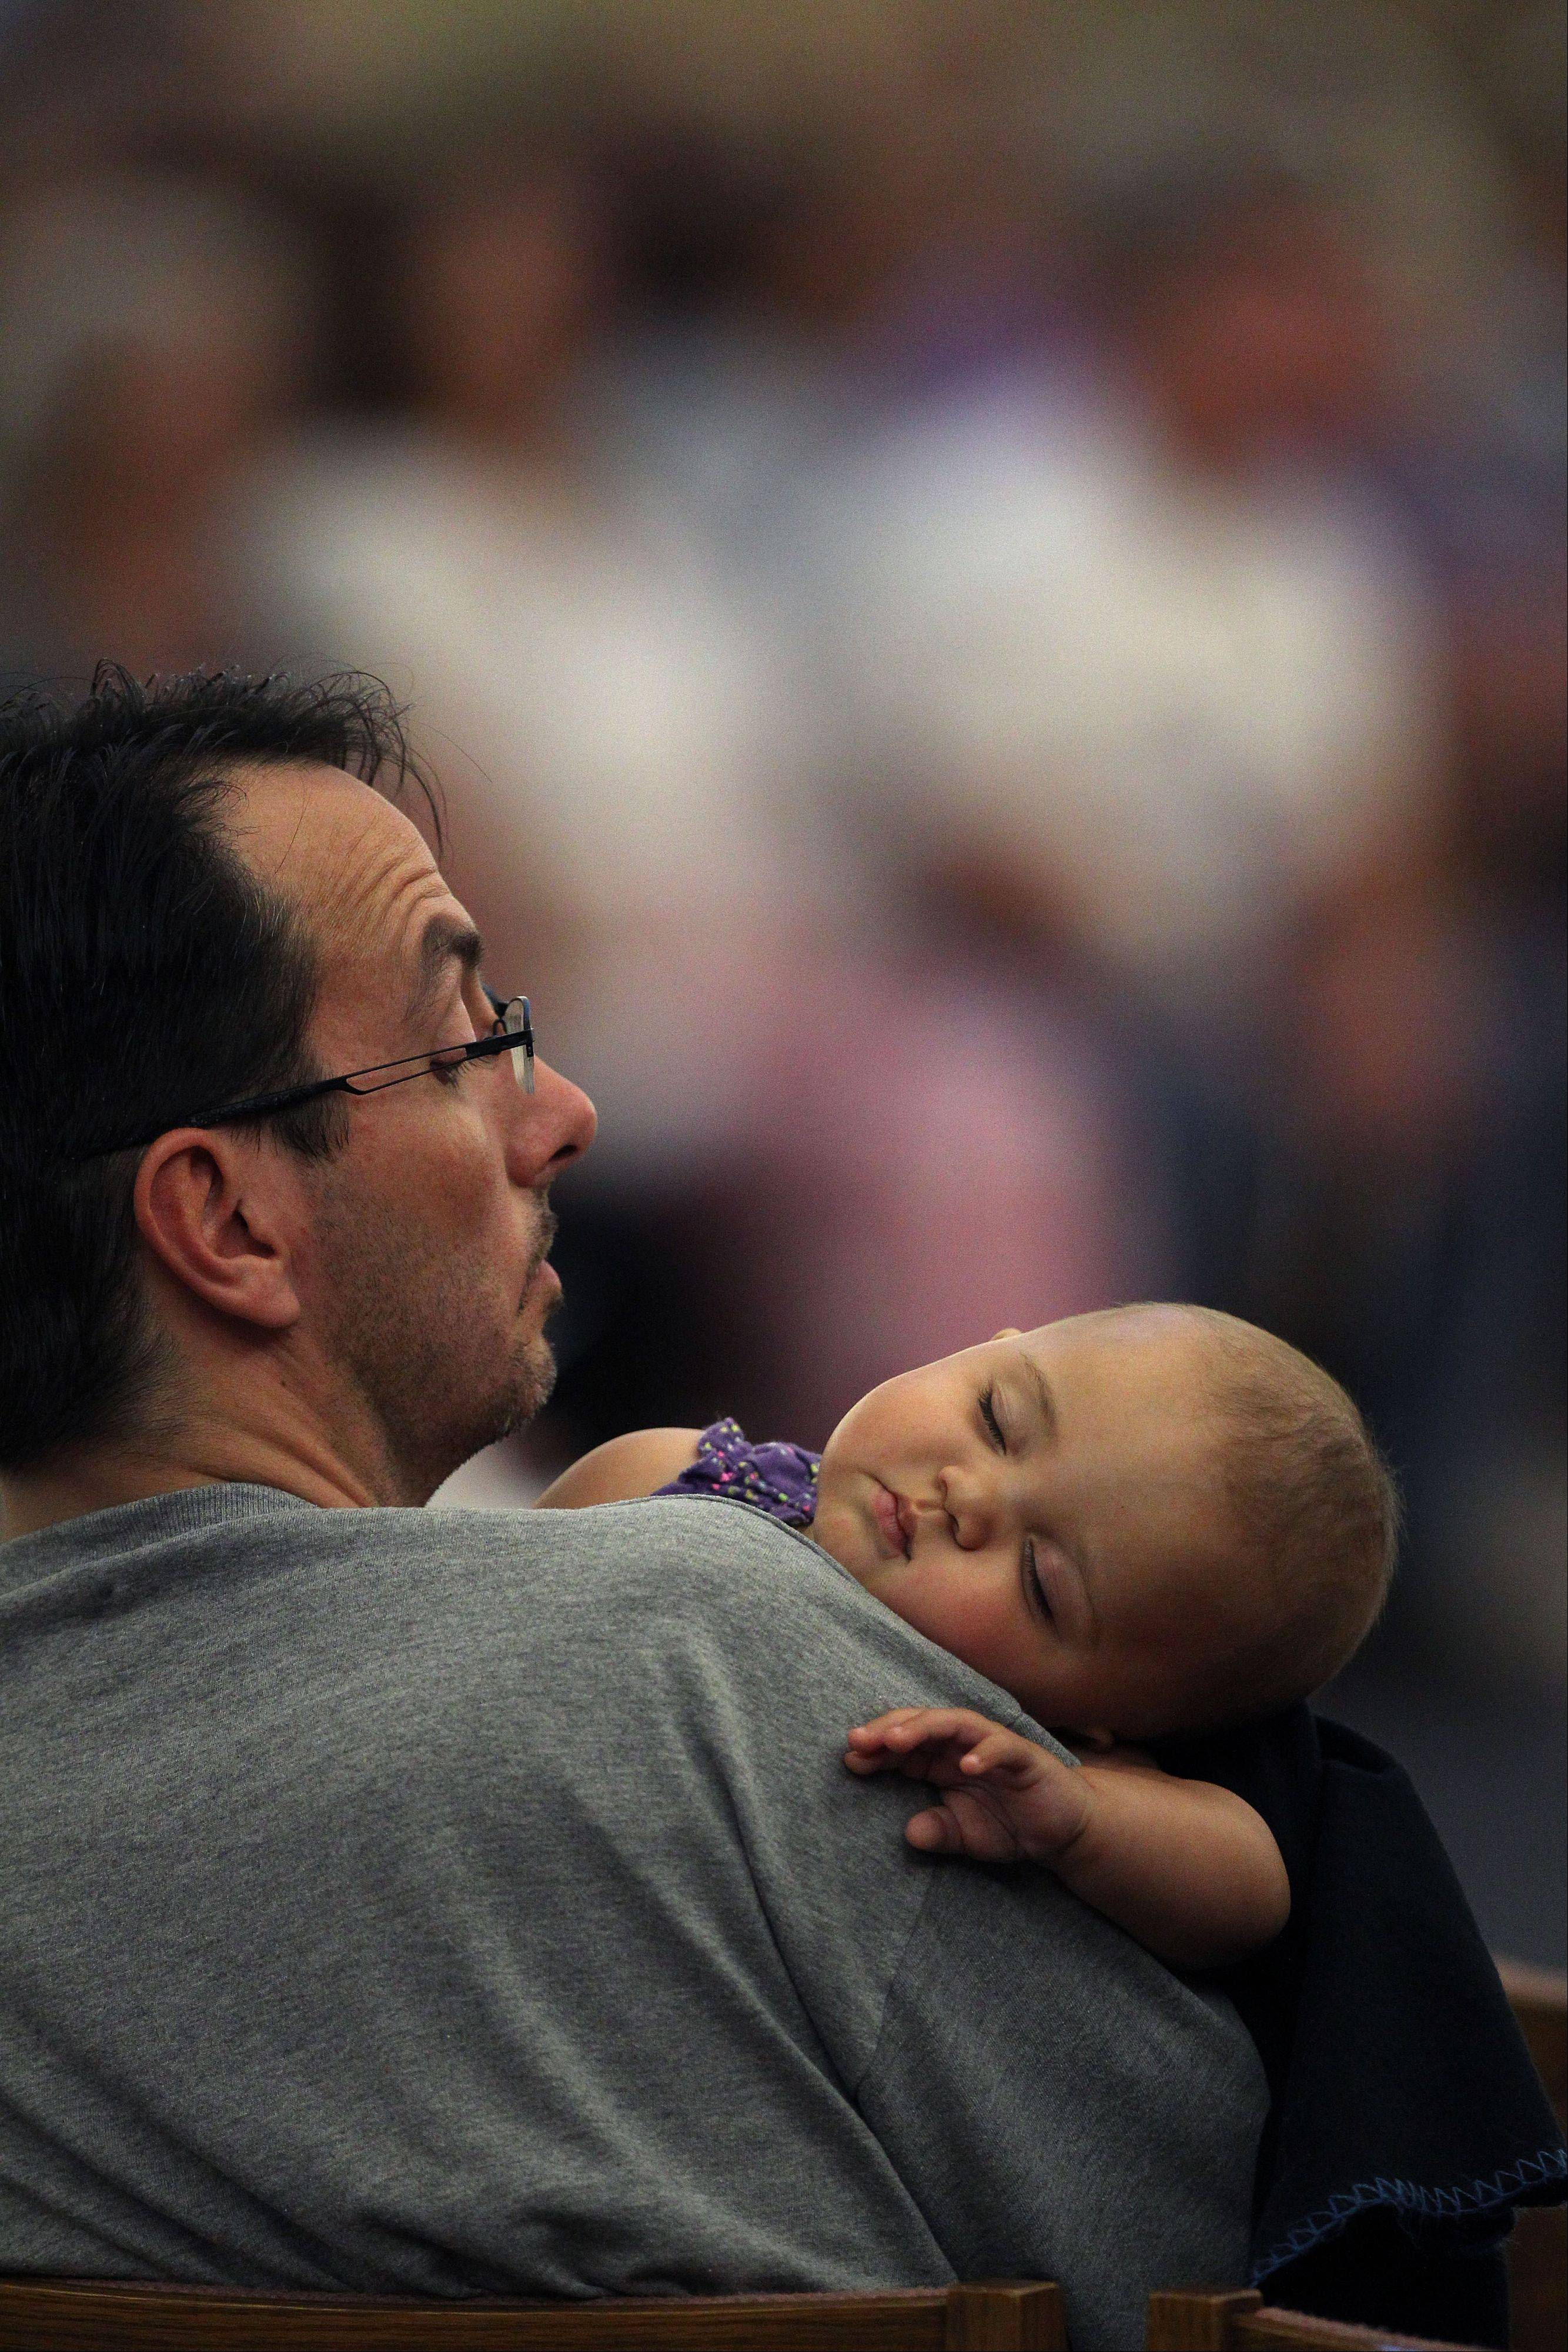 Associated PressA man checks on his baby during a memorial mass held for supporters and families of those killed in the Aurora movie theater shootings, at St. Michael the Archangel Catholic Church, in Aurora, Colo., on Friday July 19. Saturday, July 20, marks one year since the theater killing rampage left 12 dead and 70 wounded.